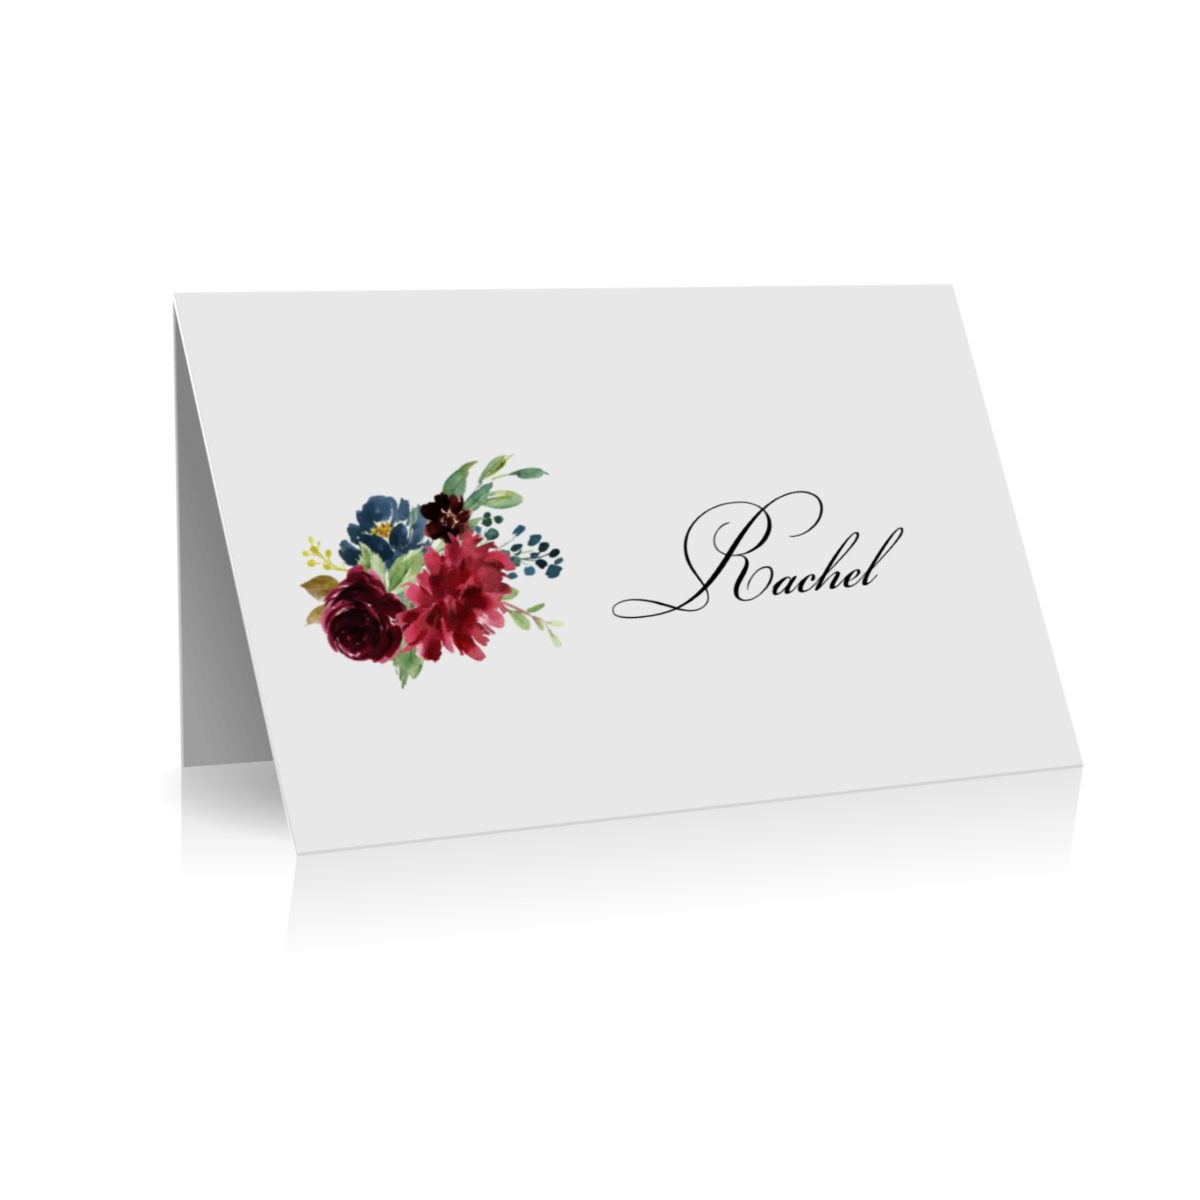 048 Bec & Nathaniel place card